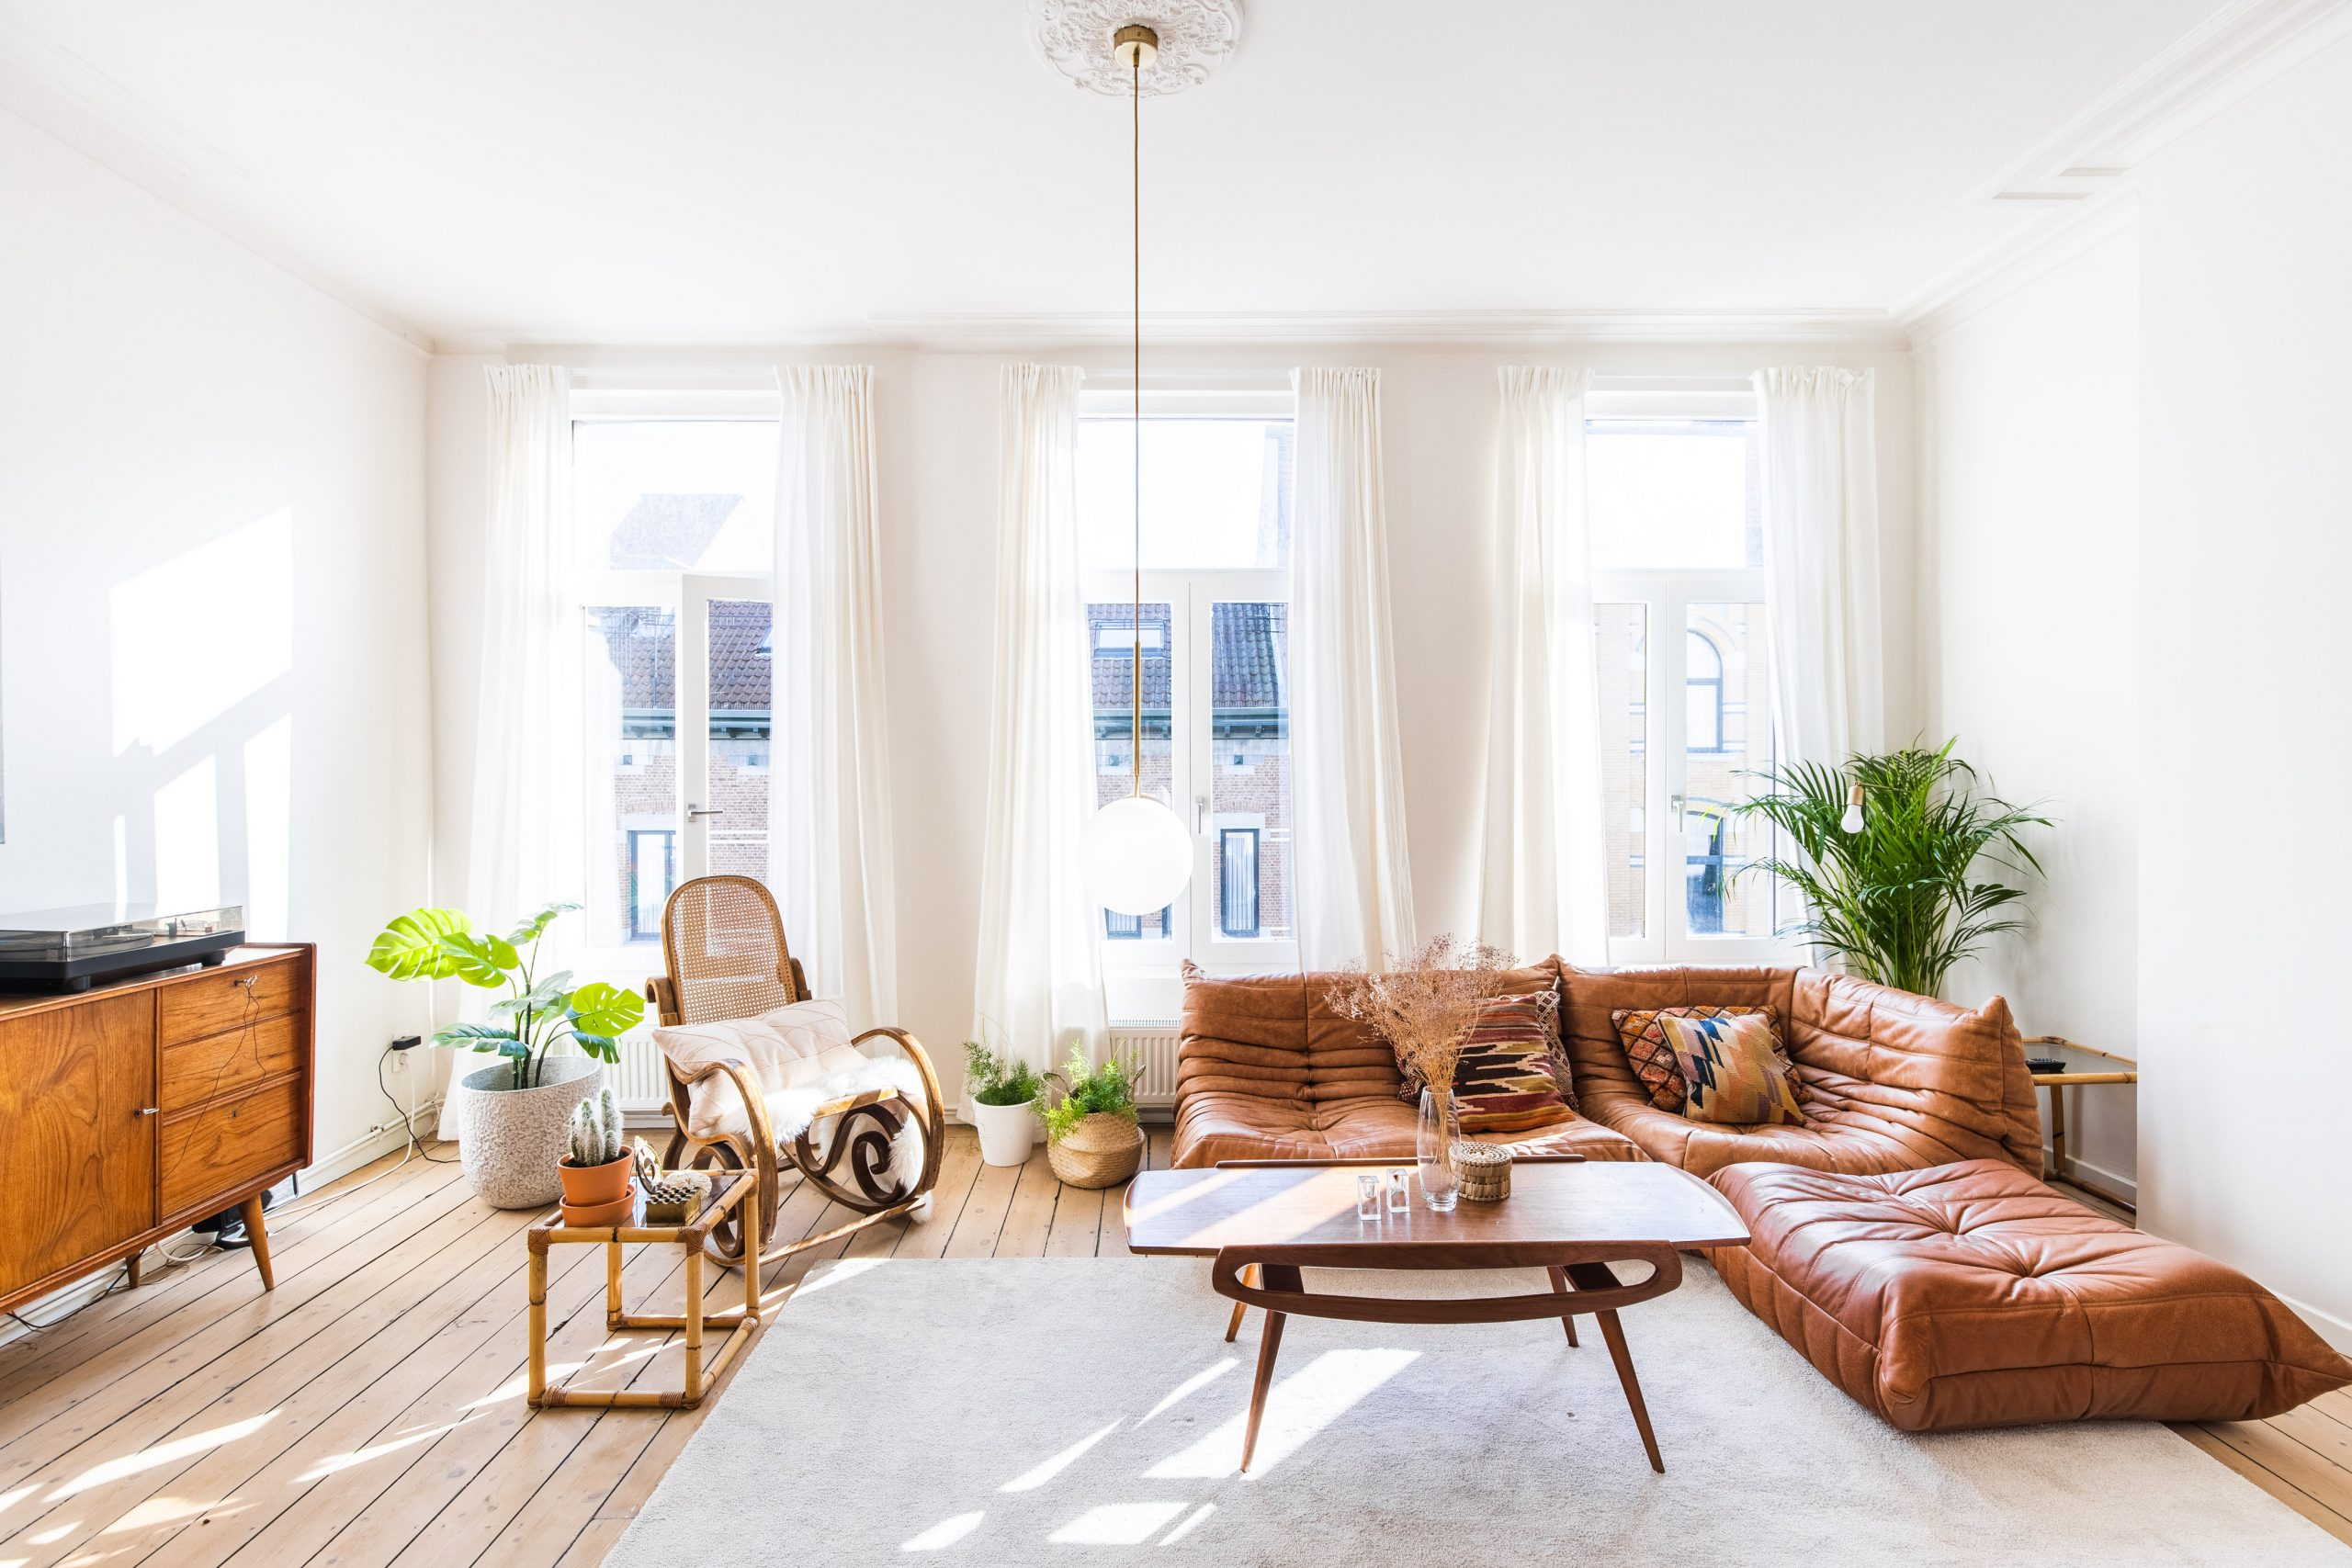 Gijzelaars - Entry ready apartment in Antwerp for expats4